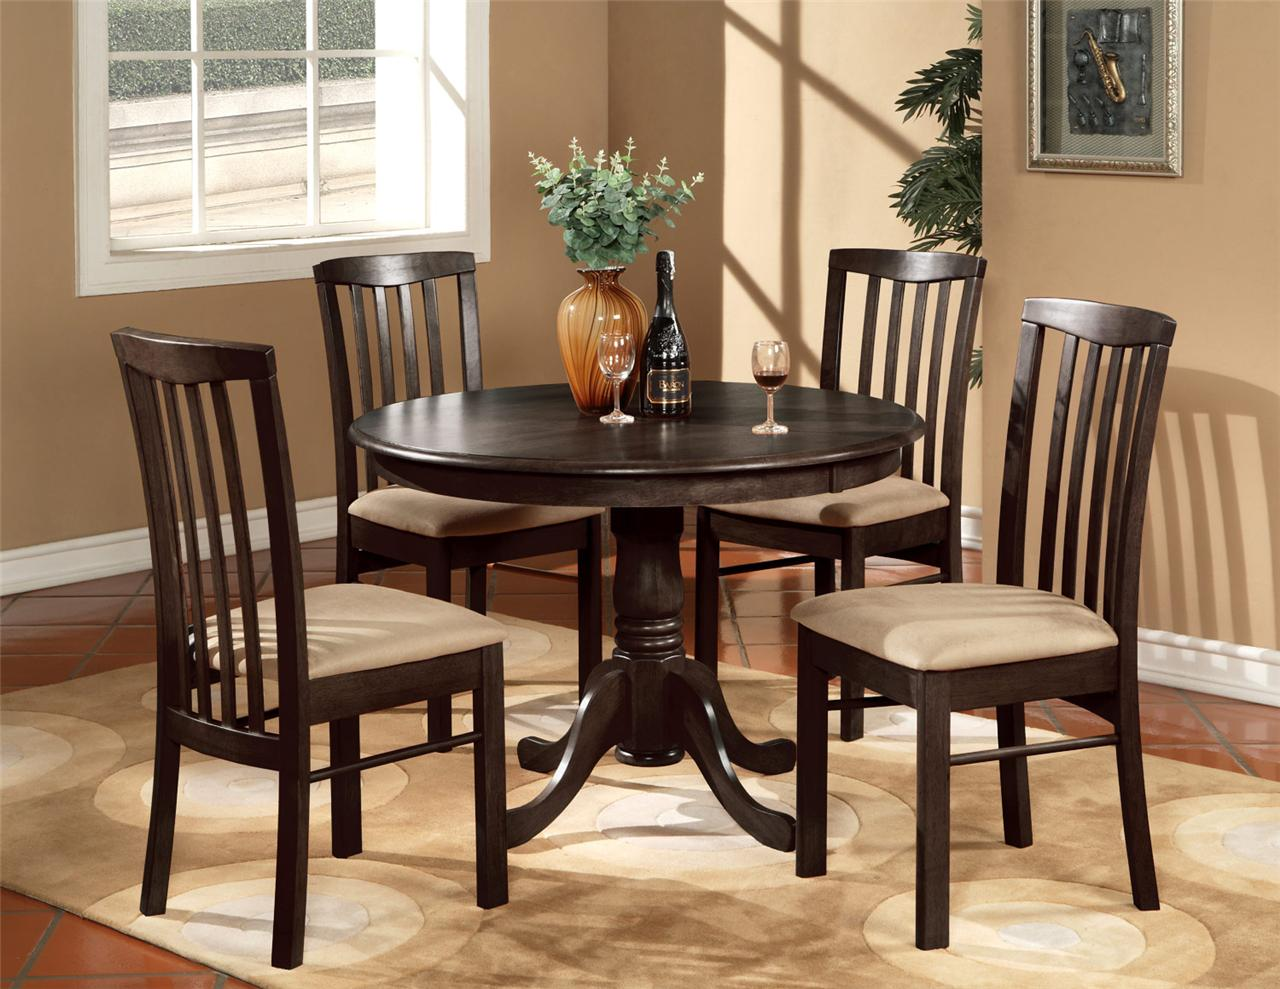 5PC ROUND 42 KITCHEN DINETTE SET TABLE AND 4 WOOD OR